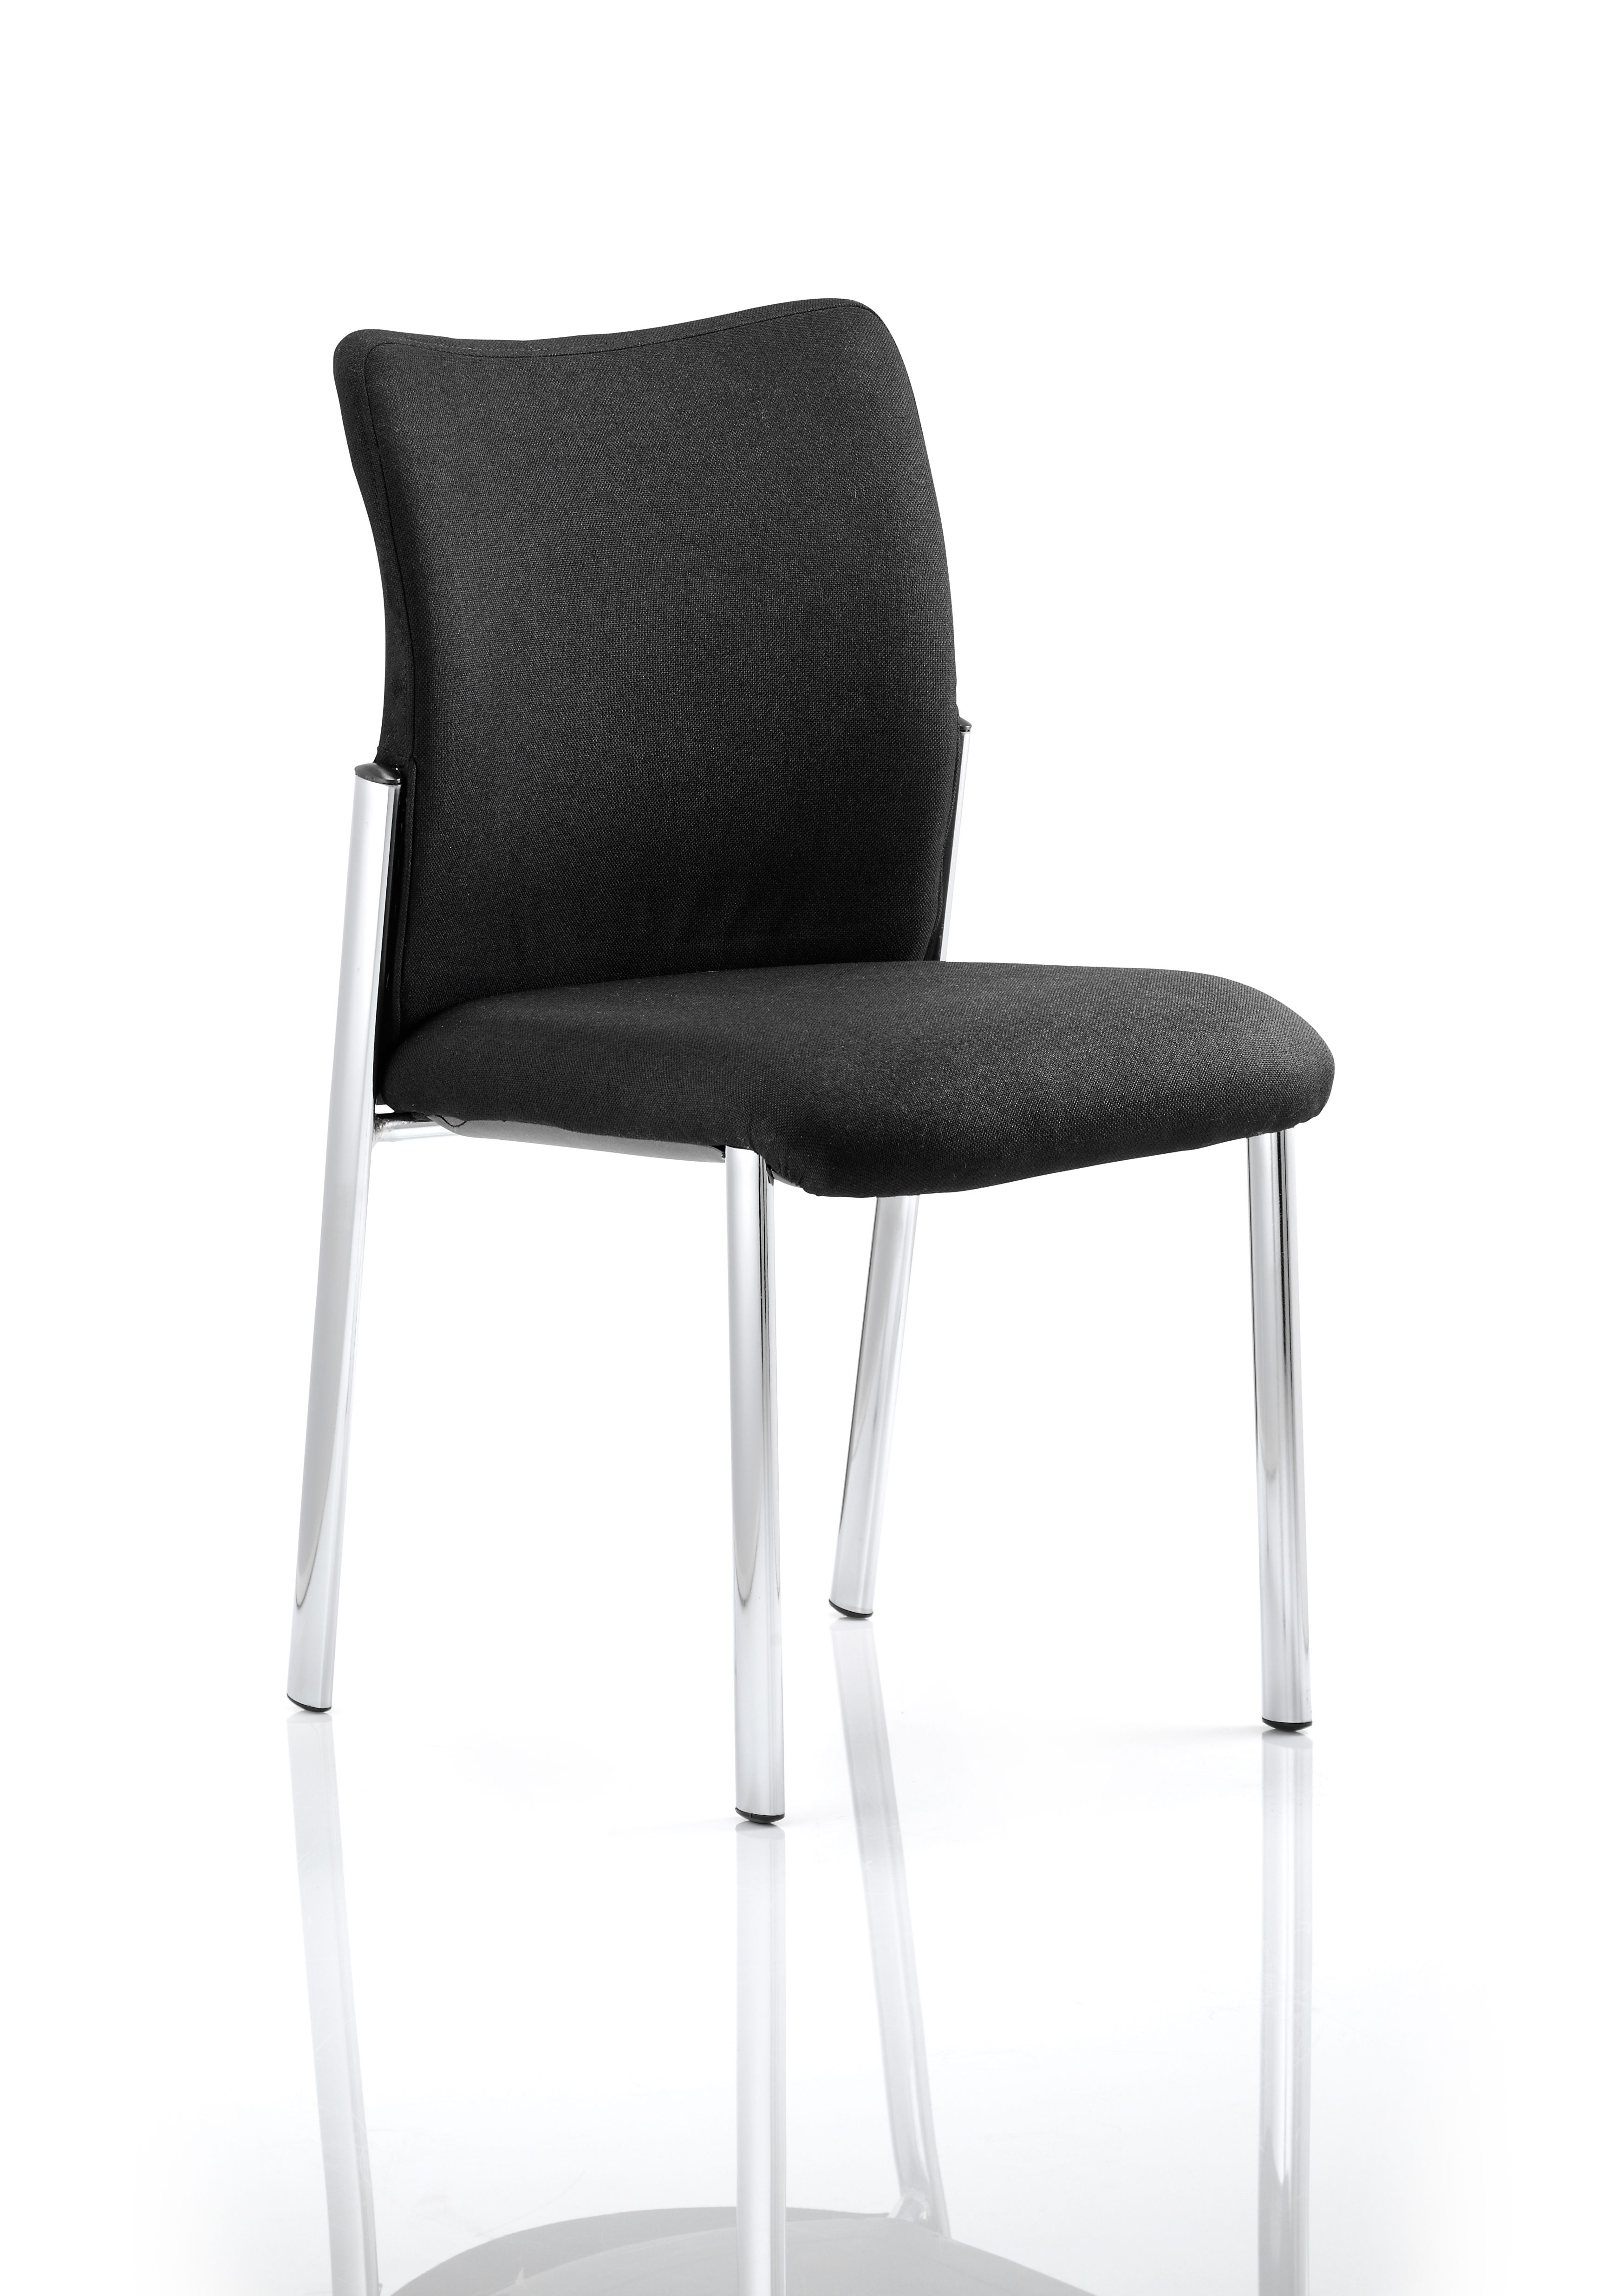 Reception Chairs Academy Visitor Chair Black Fabric Back Without Arms BR000004